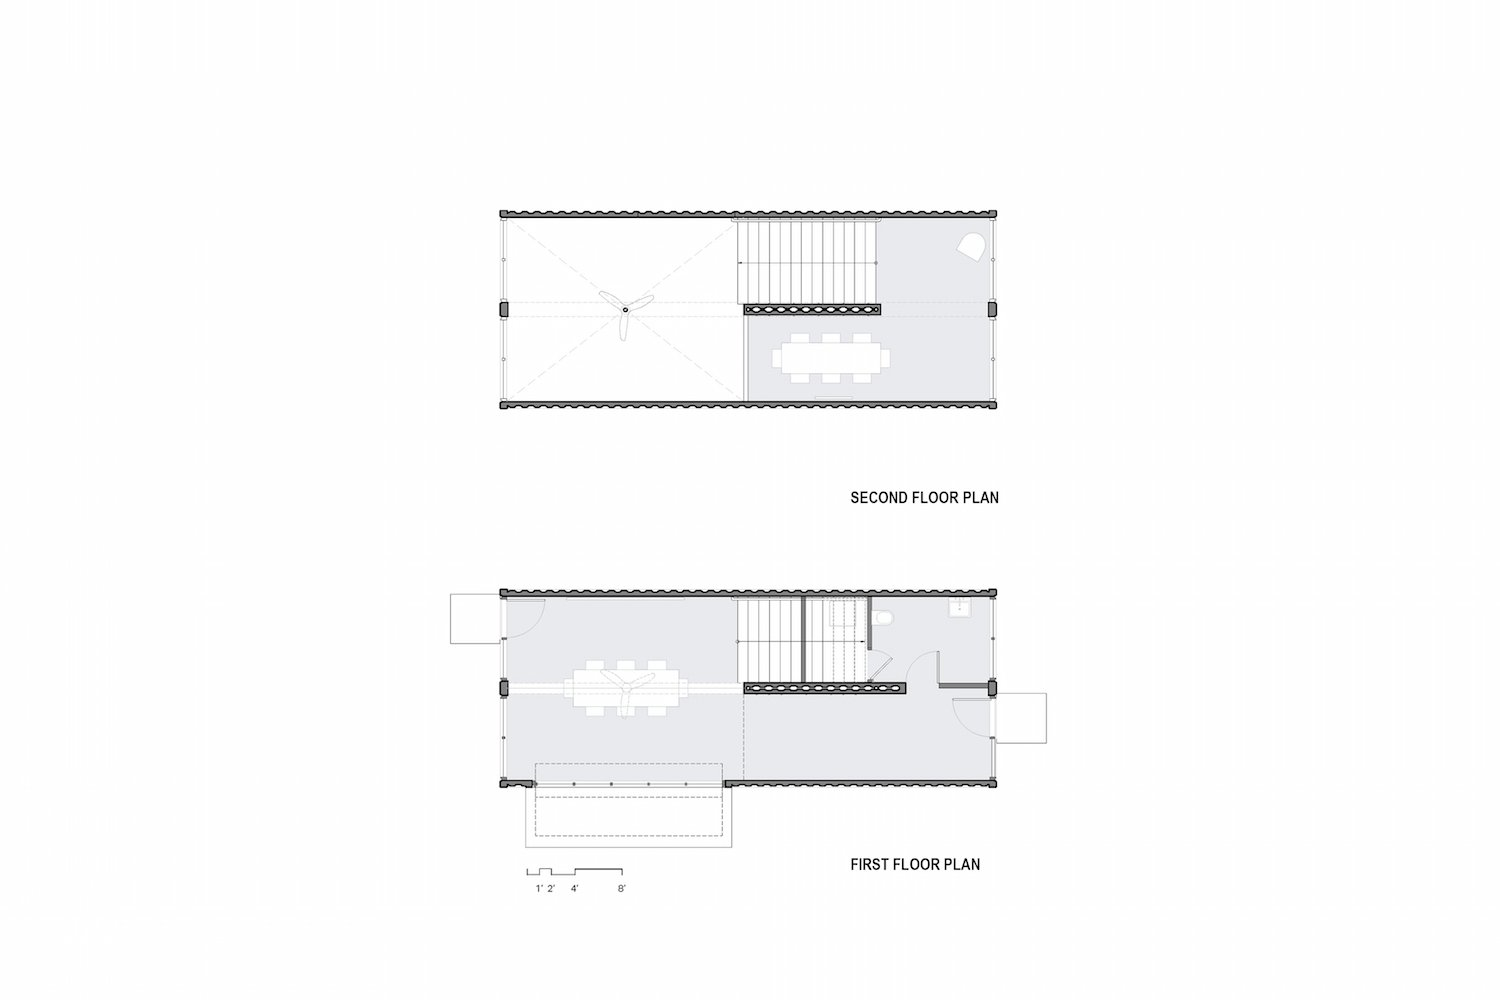 Here are the Bard College Media Lab floor plans.